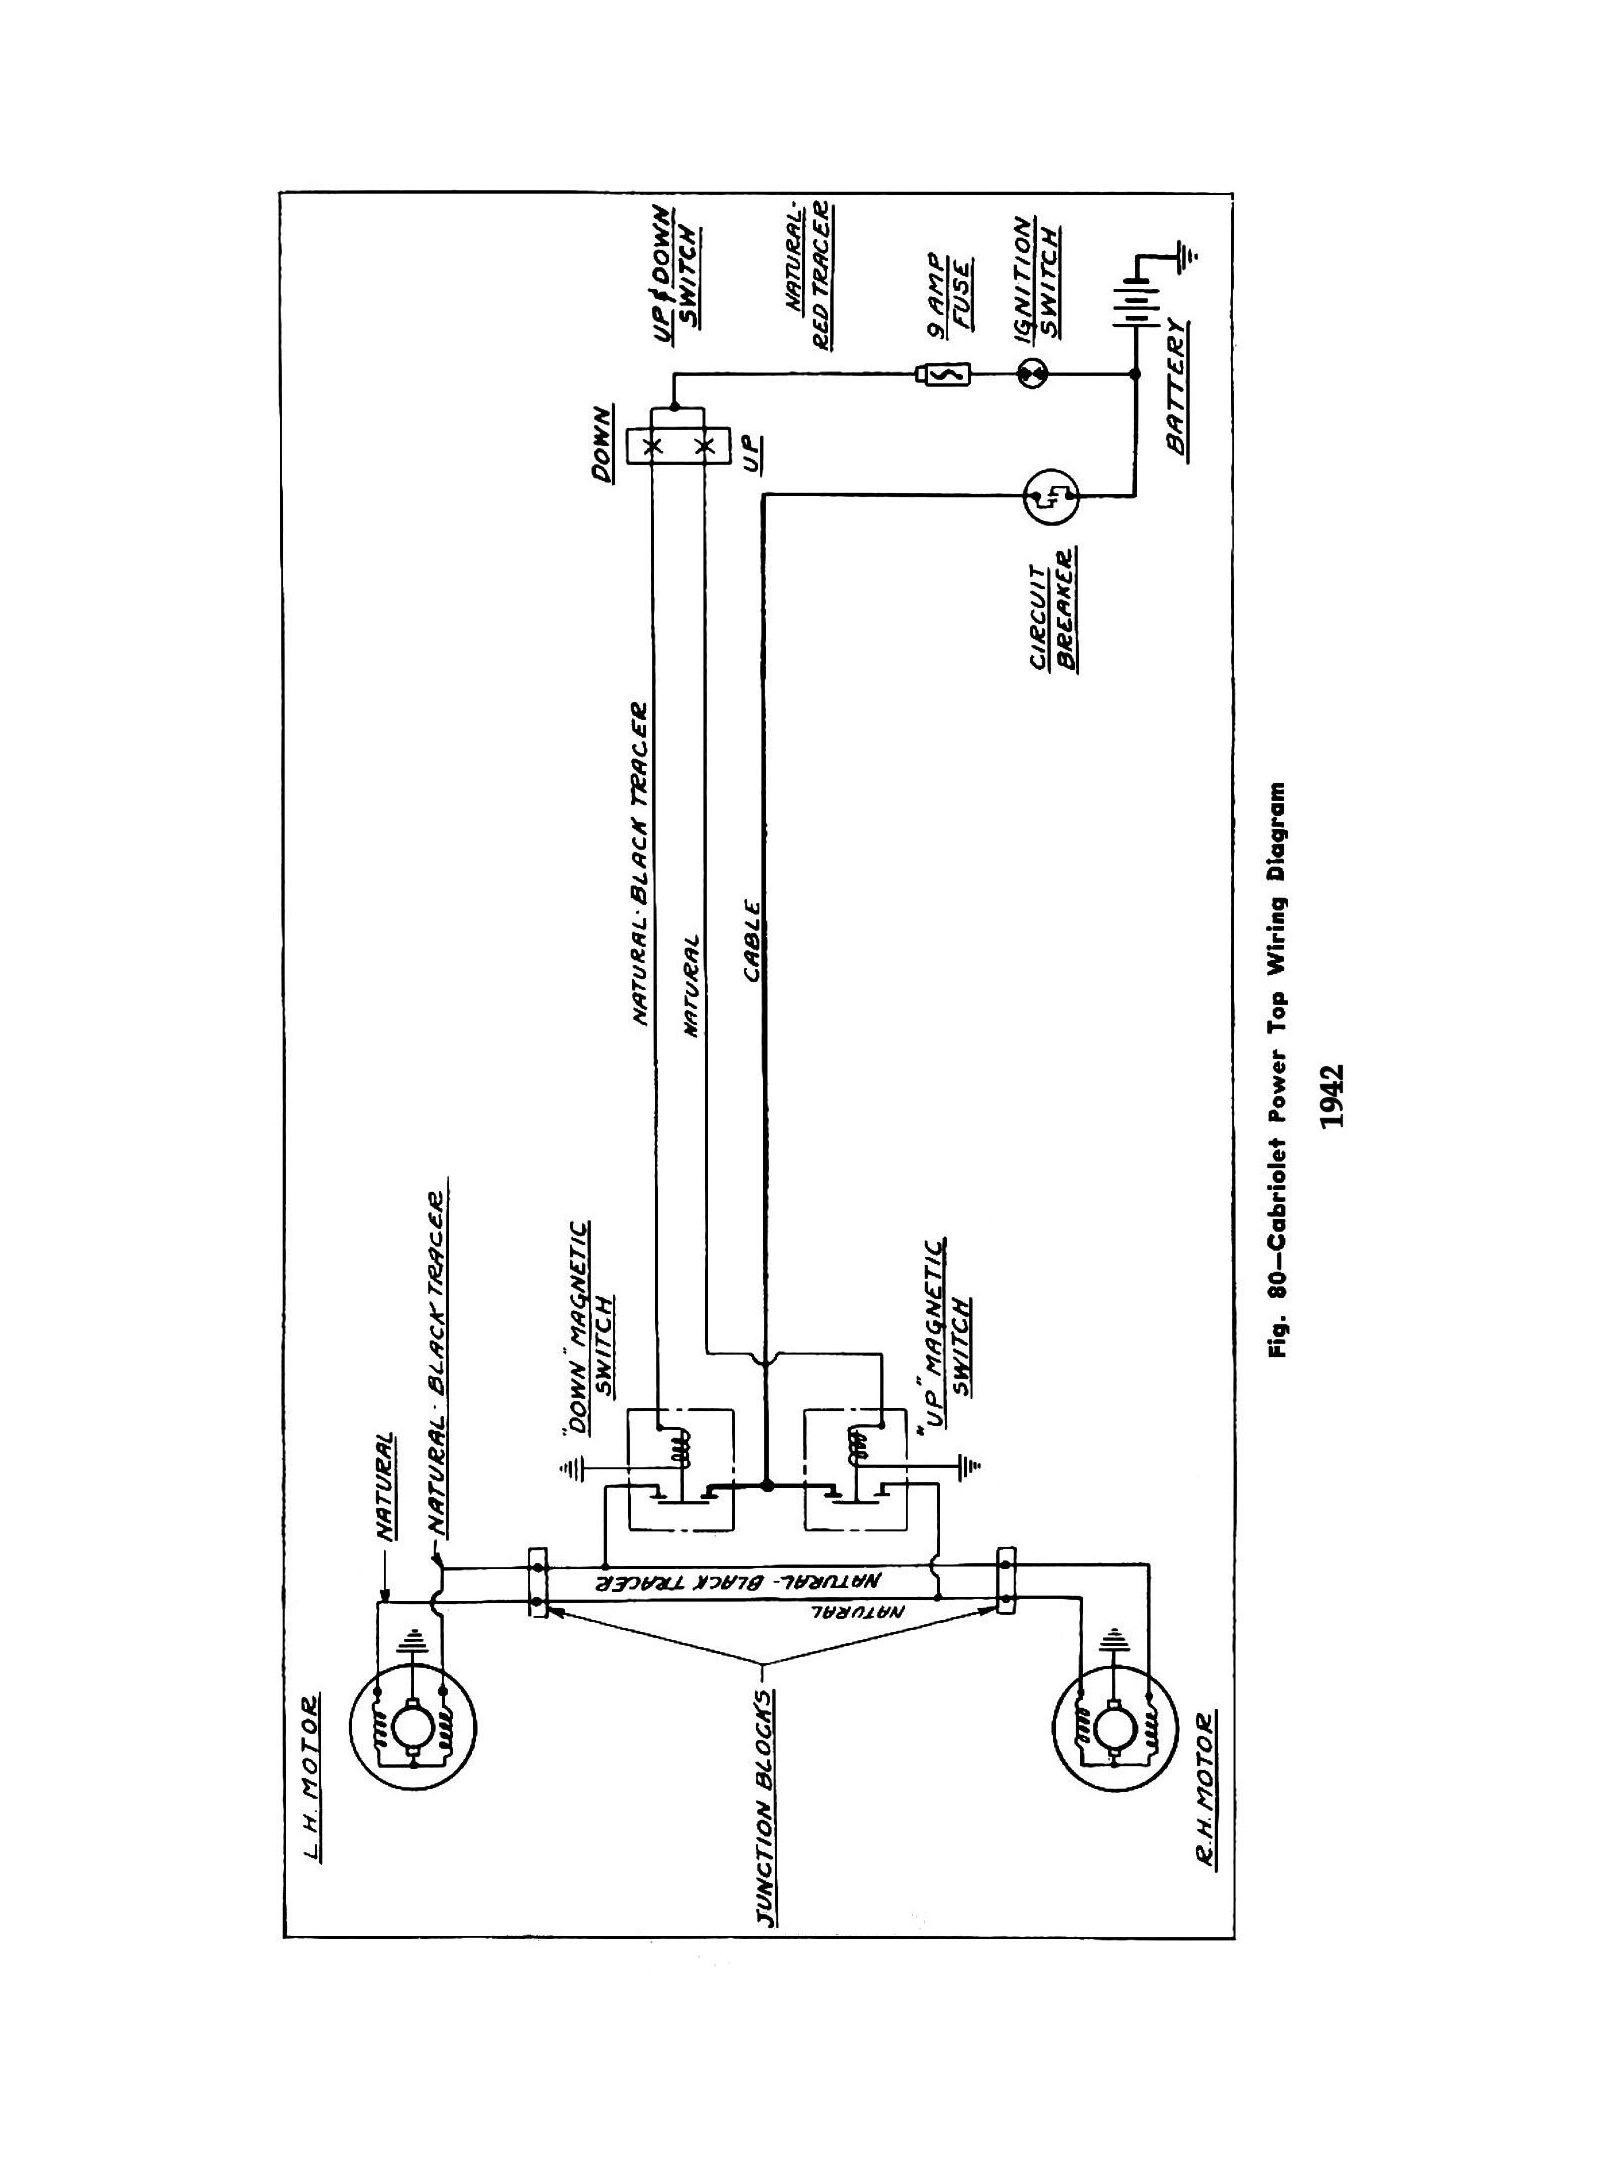 42csm1237a  Dodge Ram Tail Light Wiring Diagram on 2001 dodge ram 1500 tail light wiring diagram, 2006 dodge ram 1500 tail light wiring diagram, 2004 dodge ram 1500 tail light wiring diagram, 2008 dodge ram 1500 tail light wiring diagram, 2004 dodge ram 3500 tail light wiring diagram, 2005 dodge ram 1500 tail light wiring diagram,